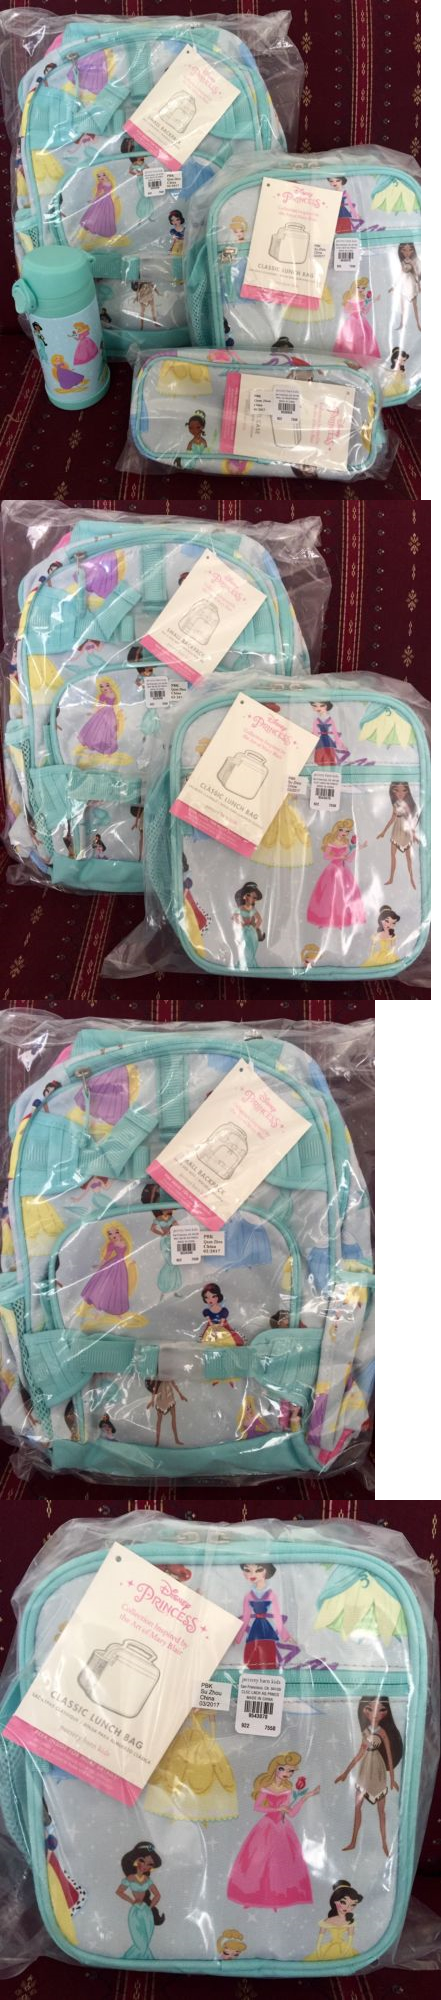 Backpacks 57917 Nwt Pottery Barn Disney Princess Backpack Lunch Bag Water Bottle Pencil Case